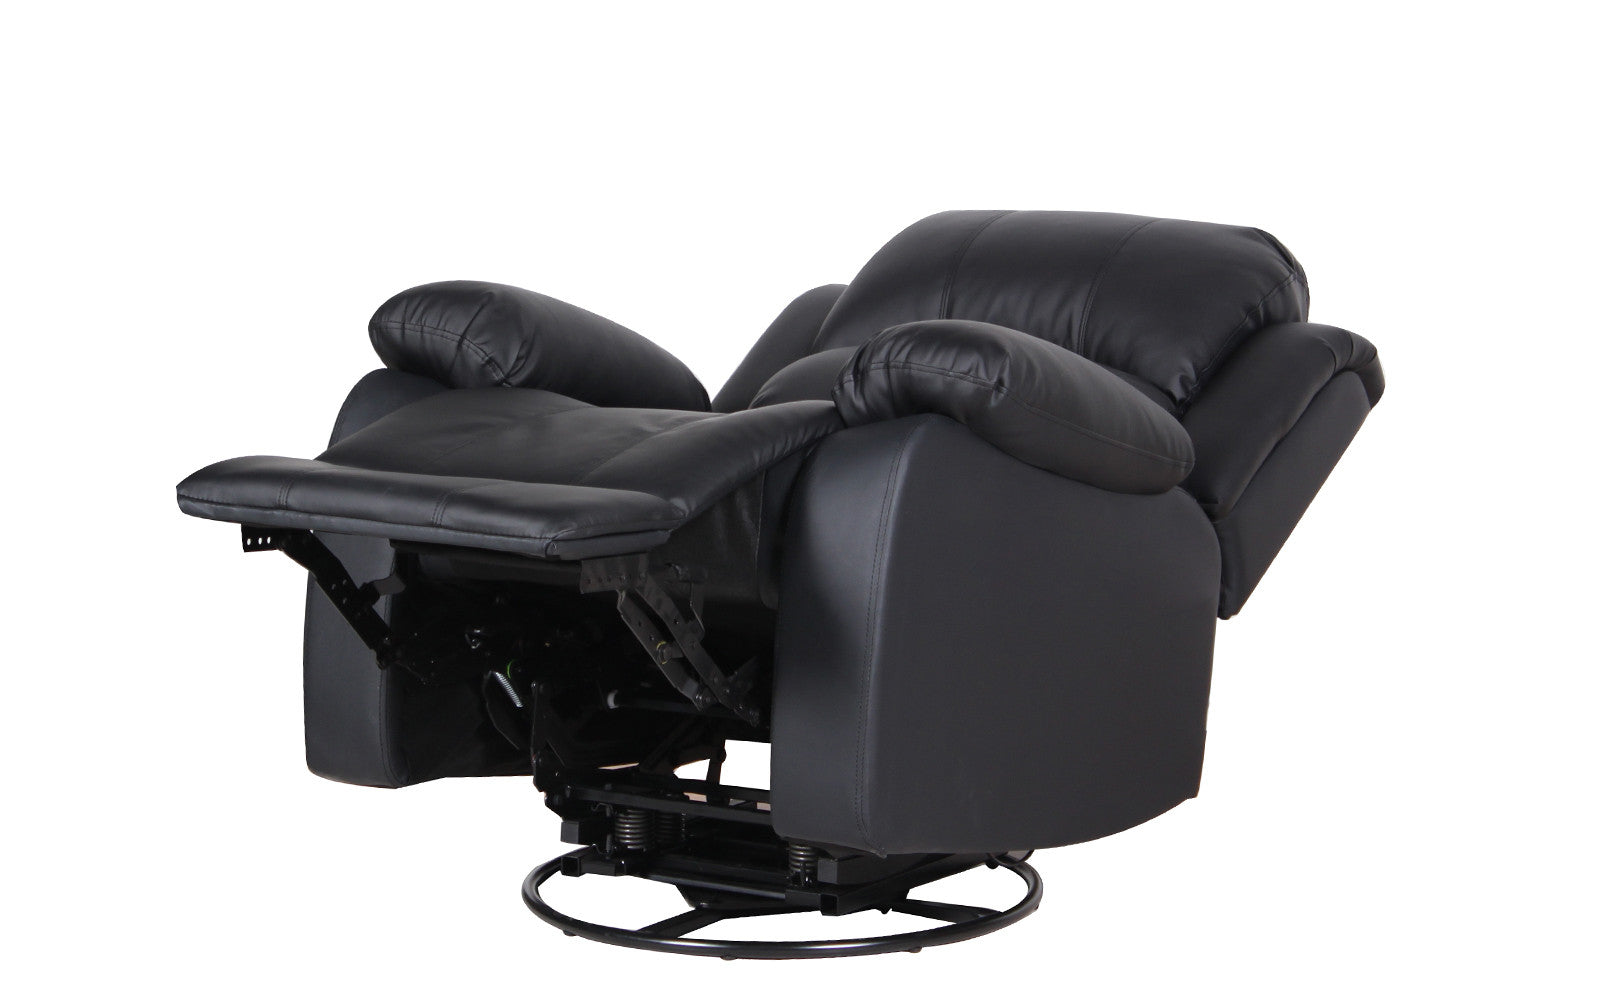 John Bonded Leather Recliner Rocker Swivel Chair In Black ...